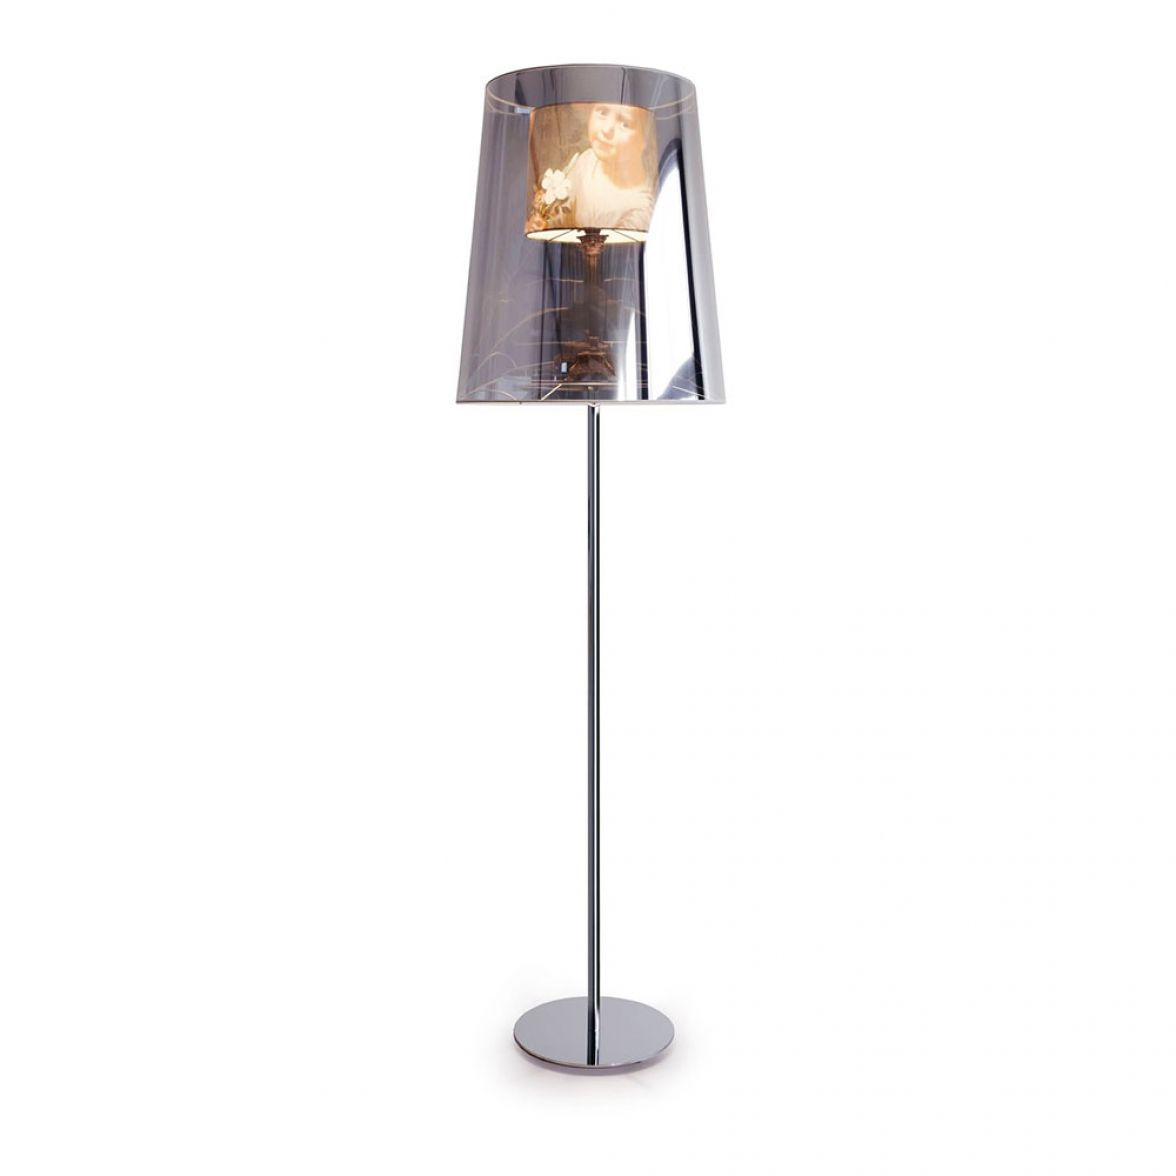 Light shade shade floor lamp фото цена